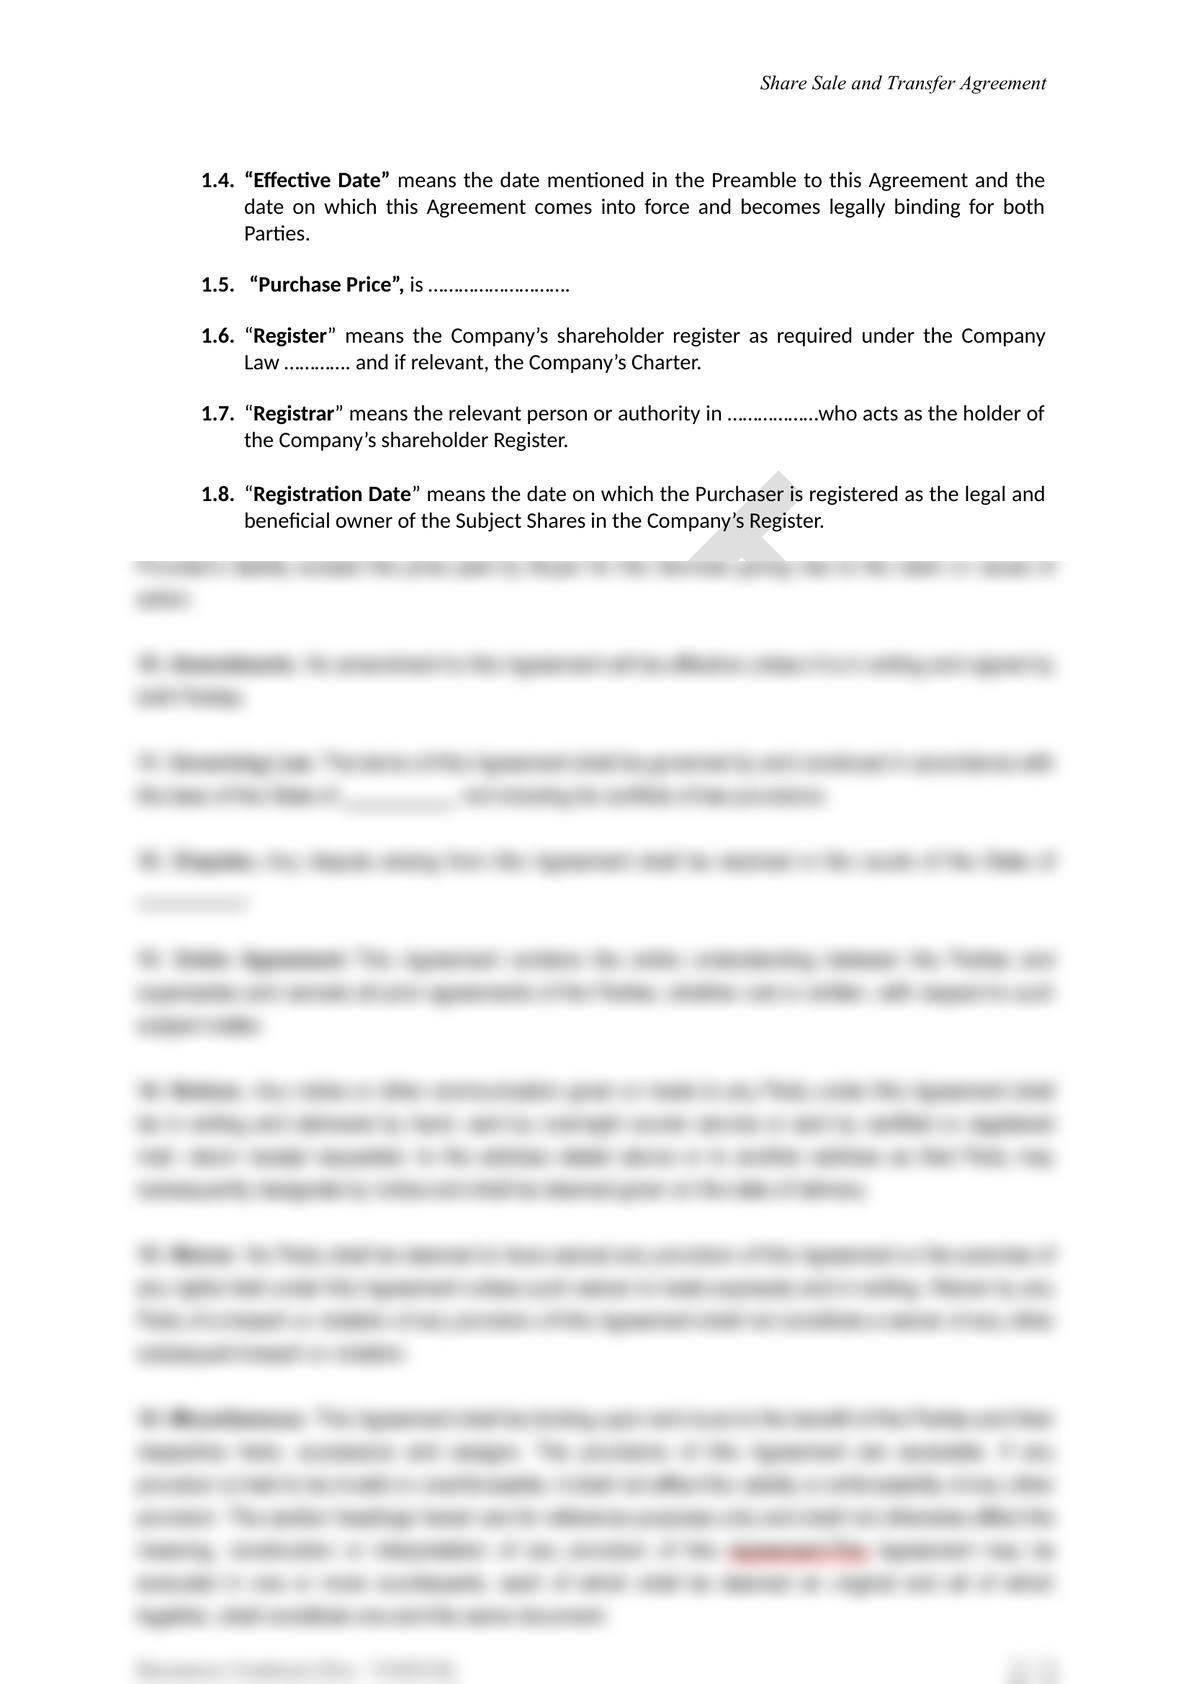 Share Sale and Purchase Agreement in Mongolia-3